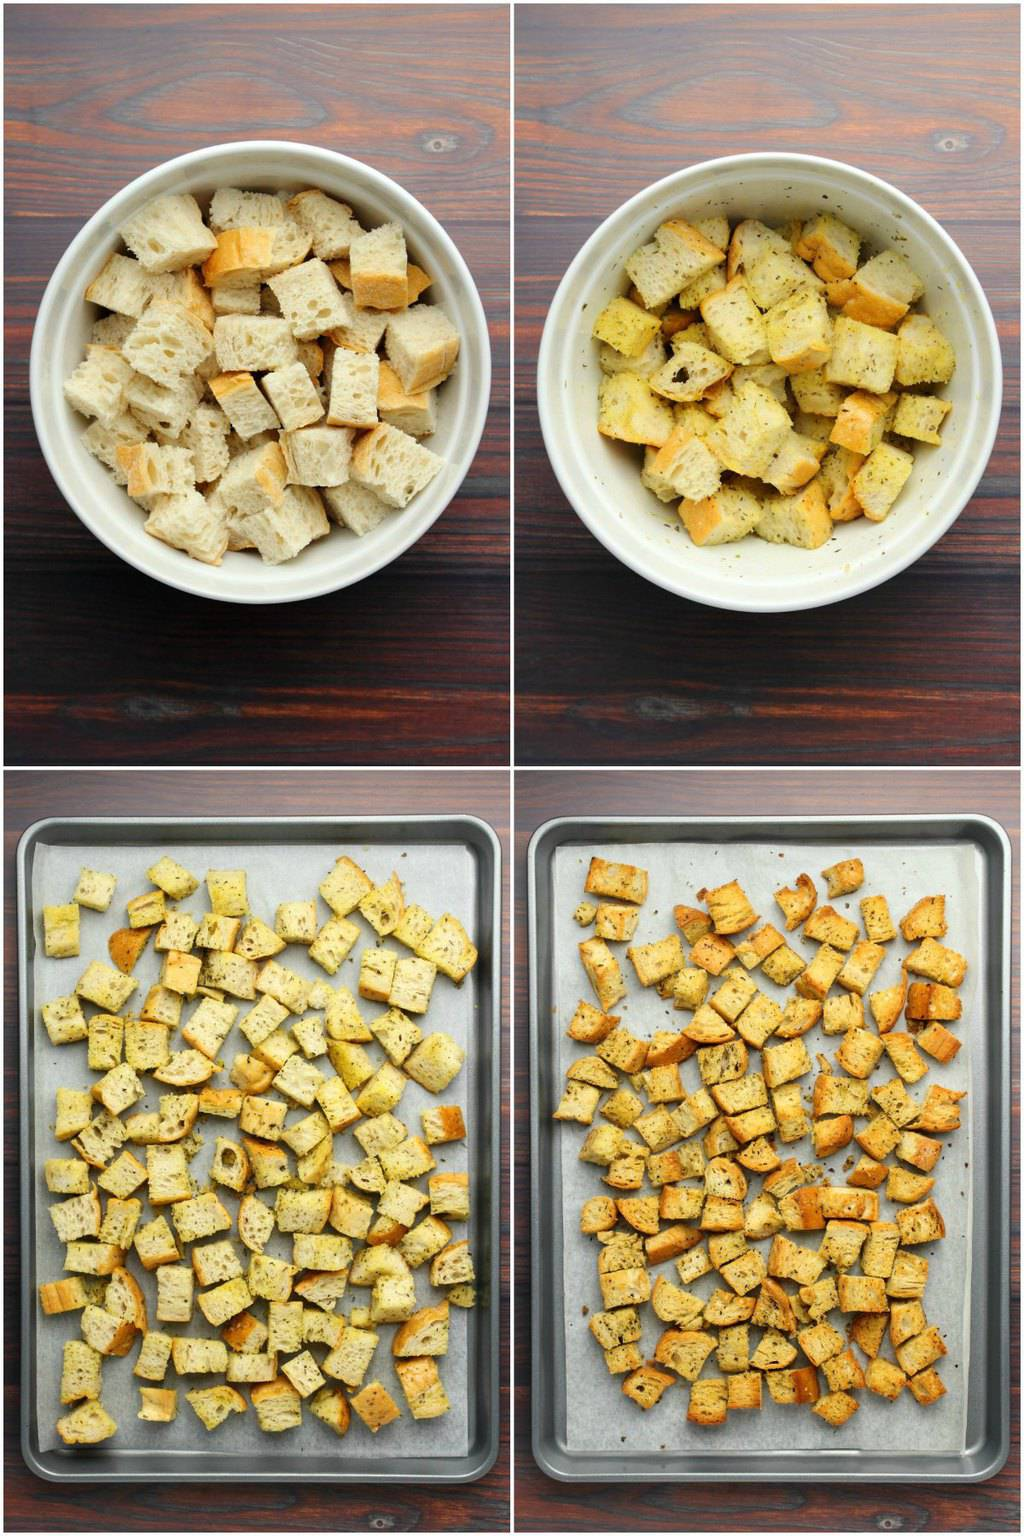 Step by step process photos to making croutons for a vegan caesar salad.